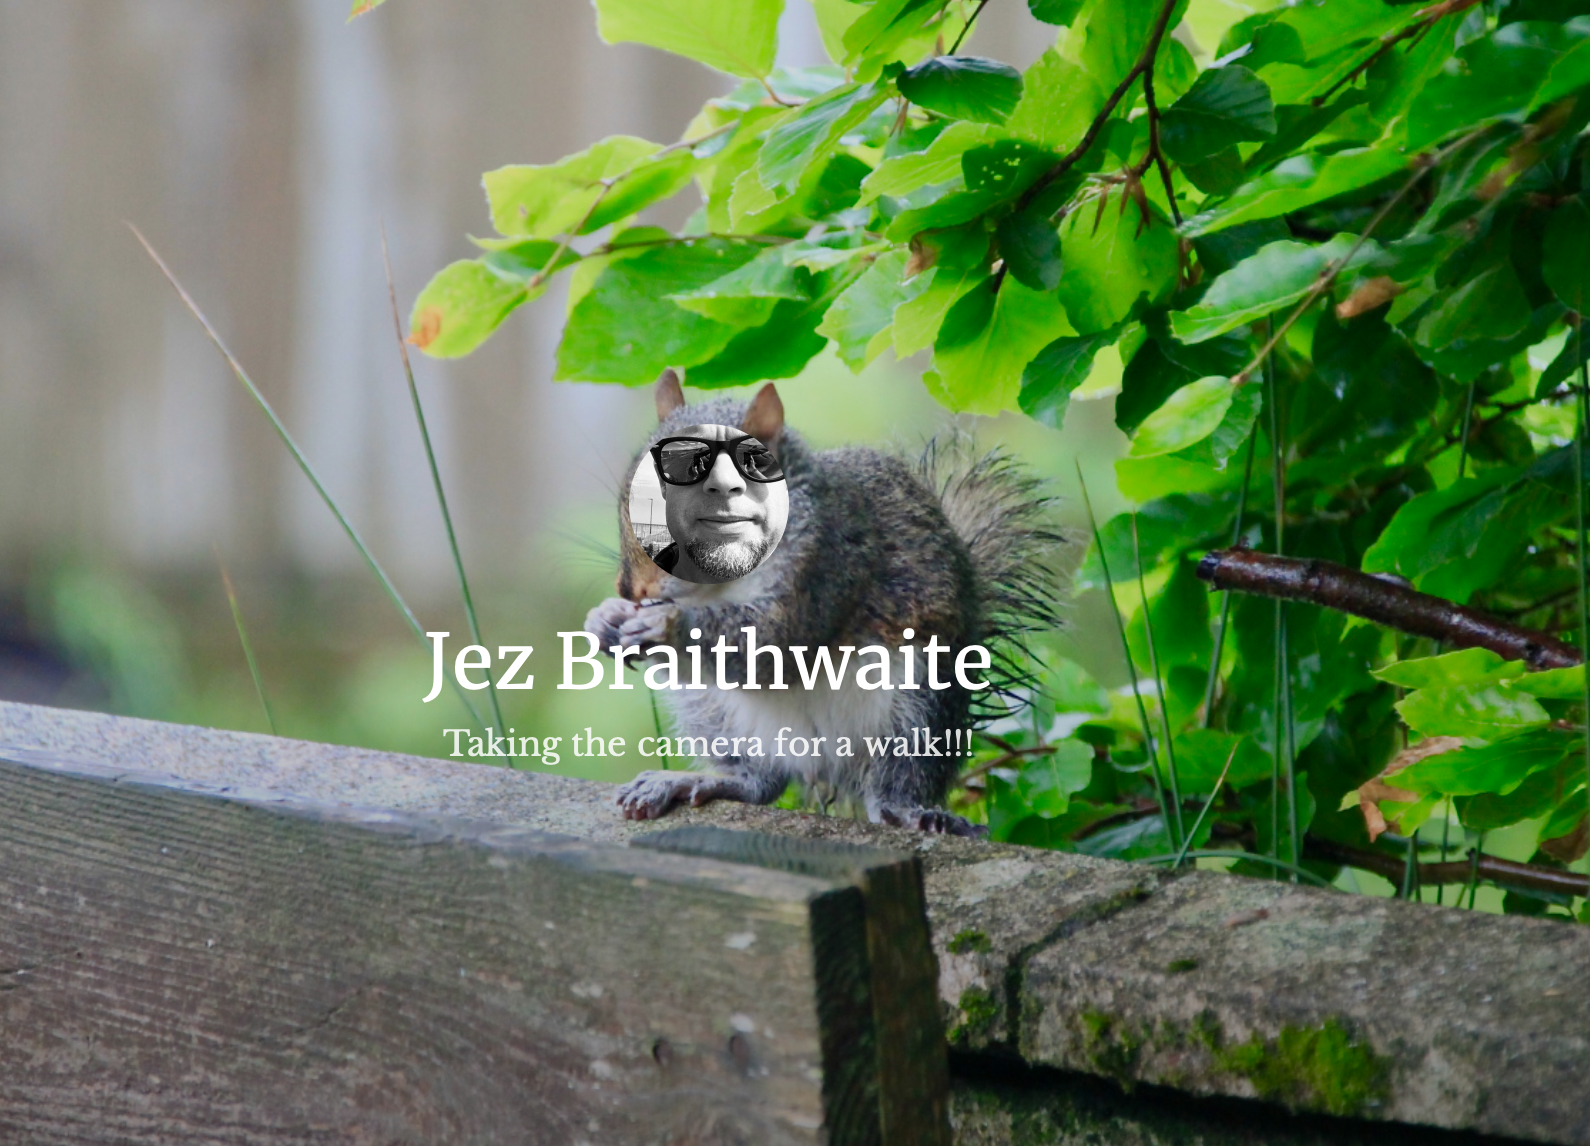 Jez the squirrel by Jez Braithwaite